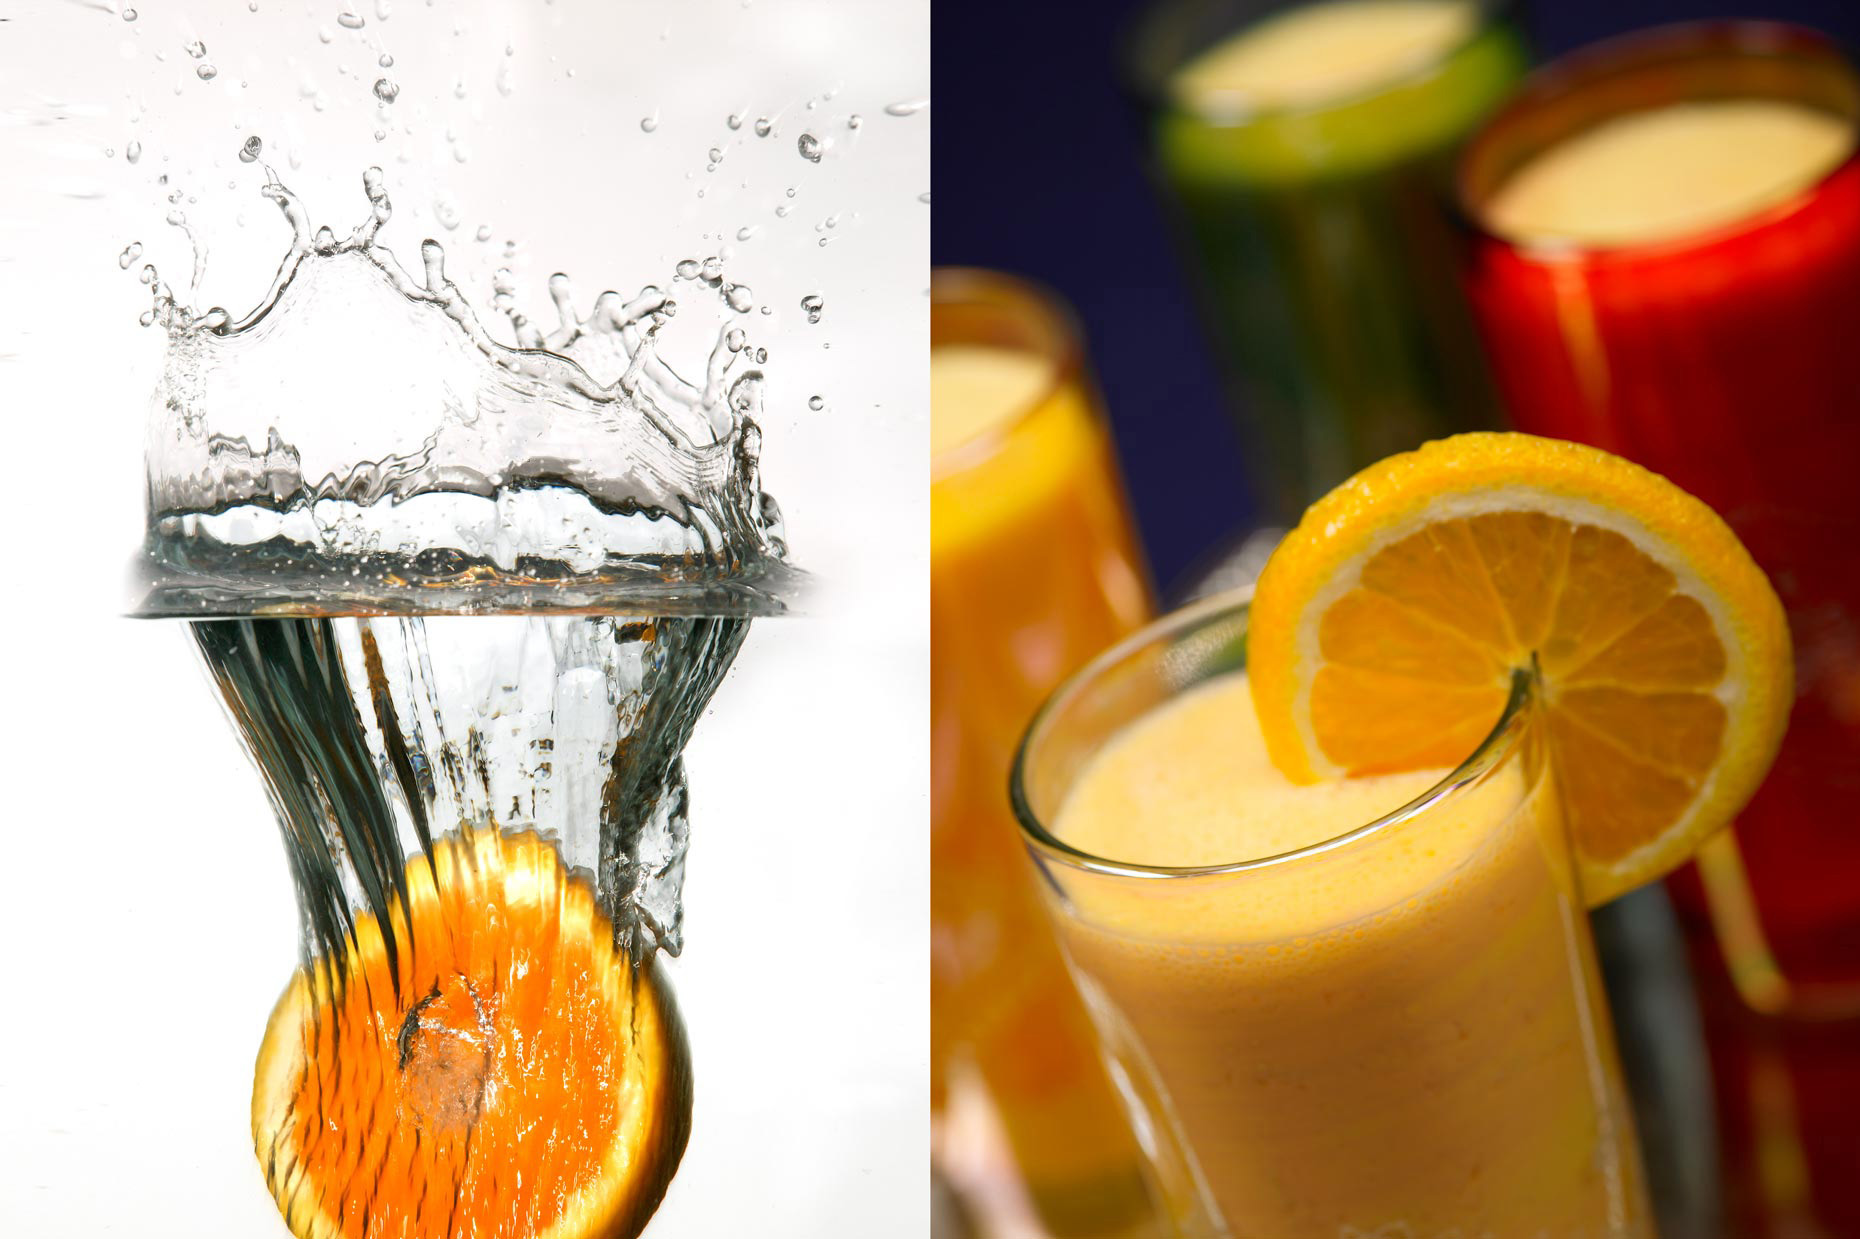 Beverage Photography | Orange Slice Splash & Citrus Beverages